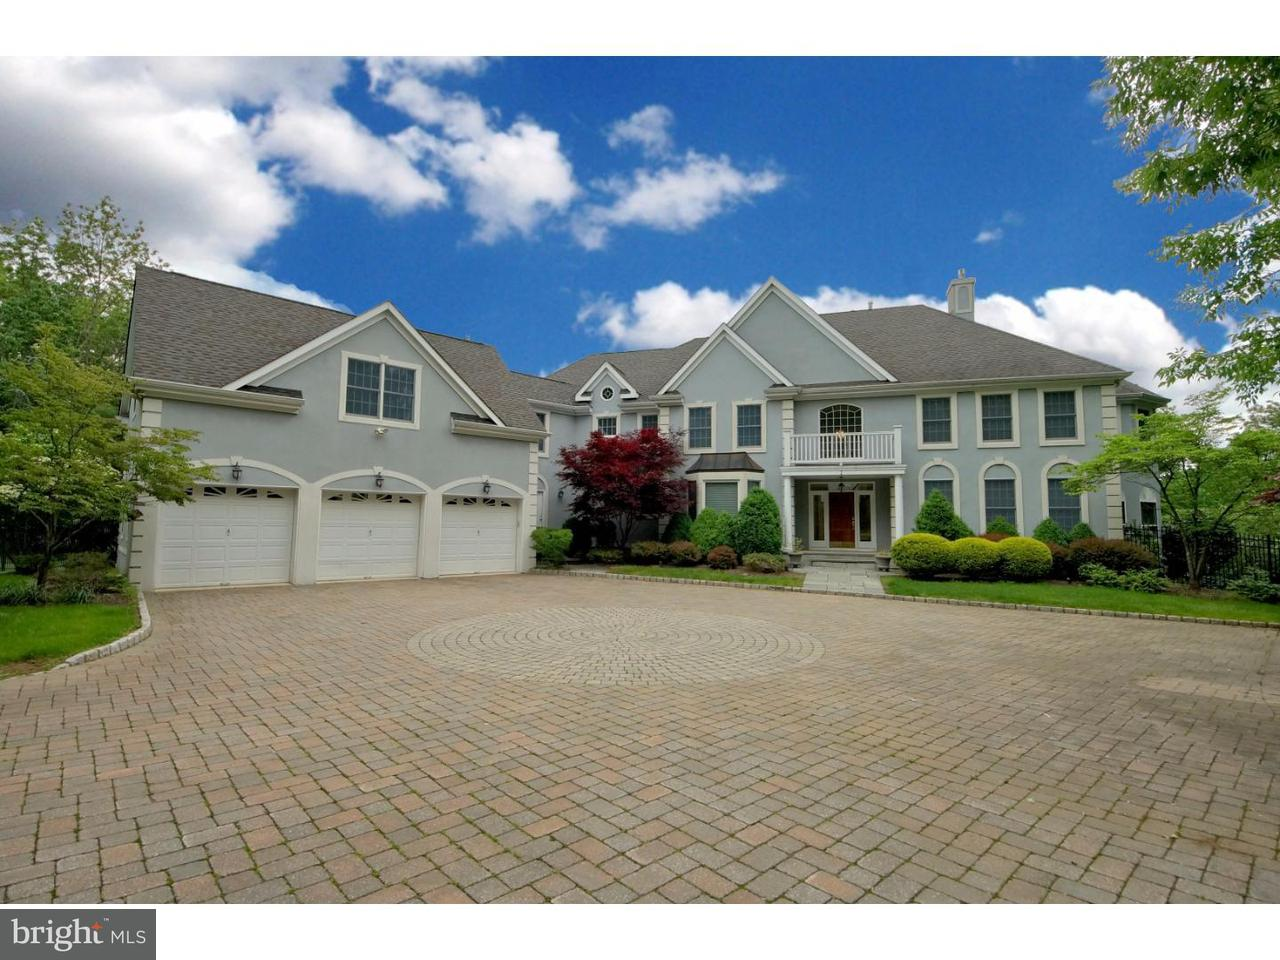 Single Family Home for Rent at 1 TIMBERBROOKE Drive Hopewell, New Jersey 08525 United StatesMunicipality: Hopewell Township